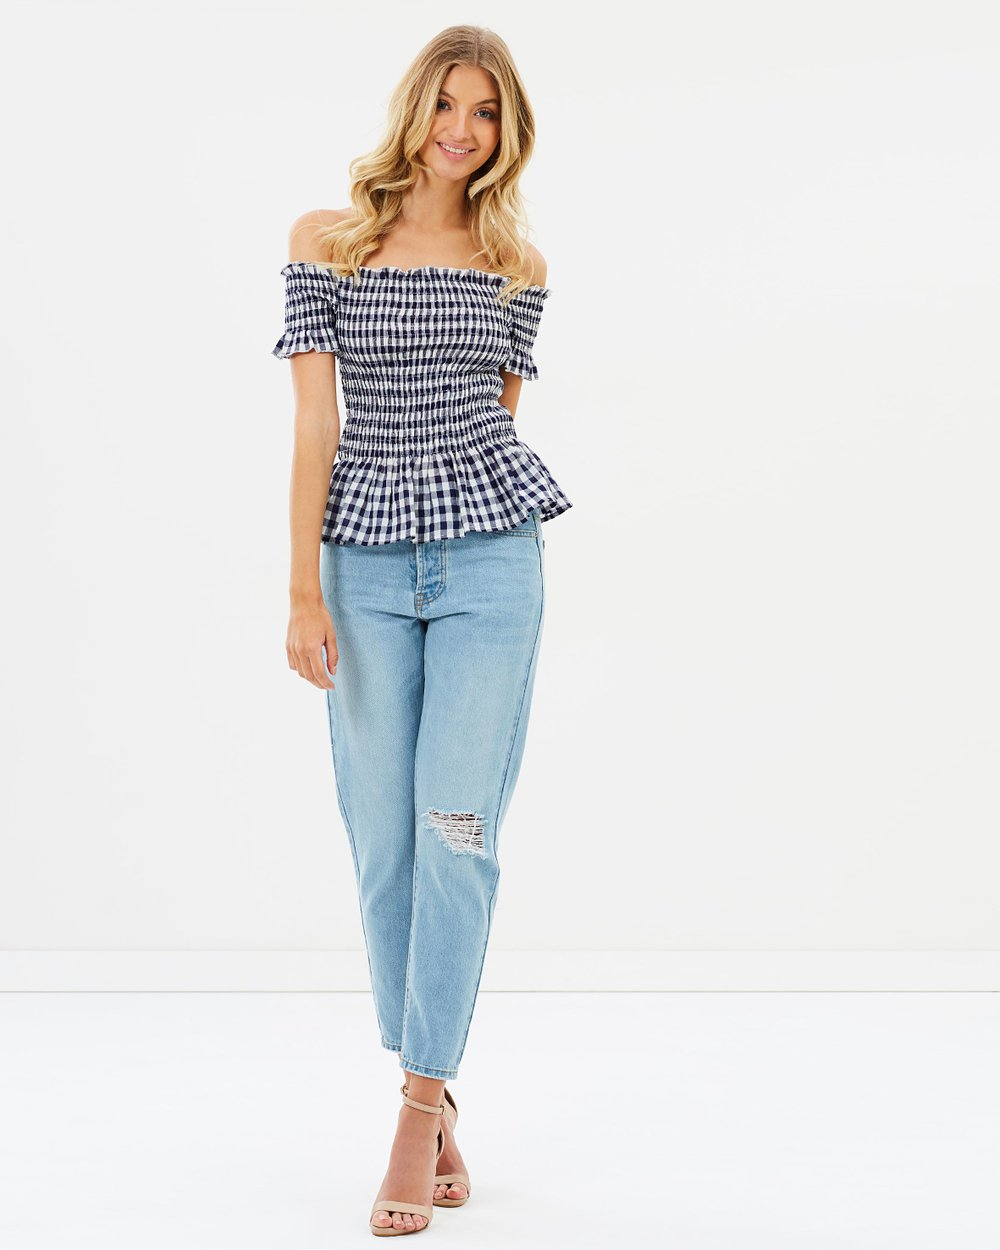 2d1a3c40176e1e ICONIC EXCLUSIVE - Tessa Off-the-Shoulder Shirred Top by Atmos Here Online